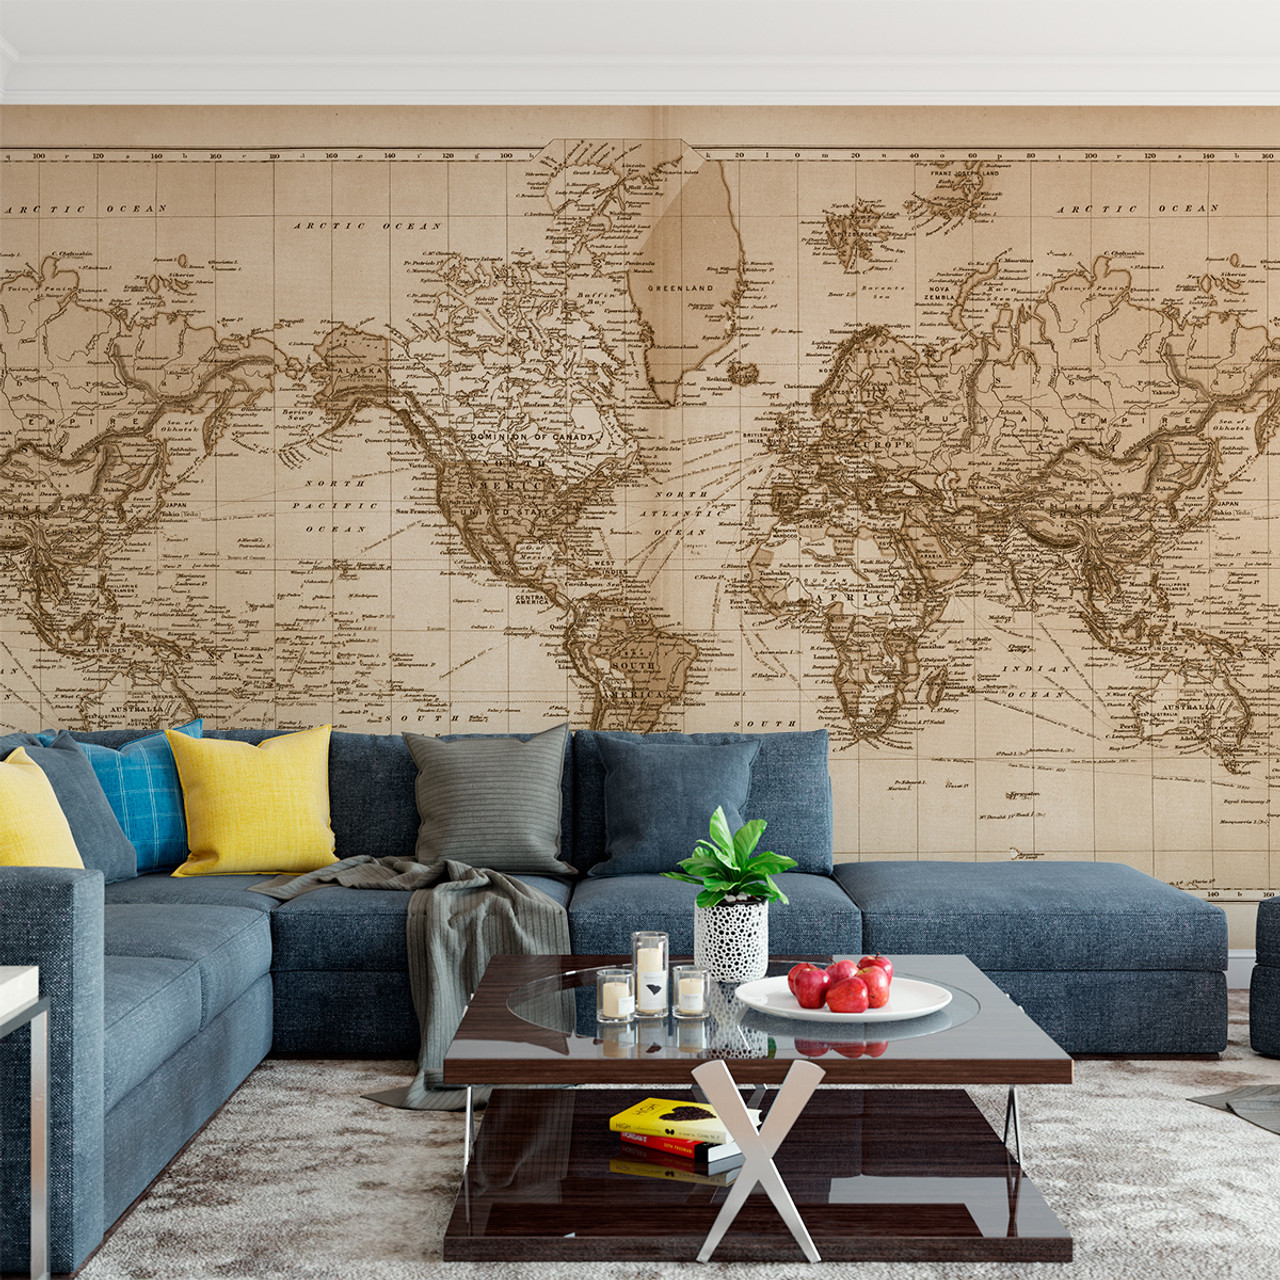 Picture of: Vintage World Atlas Map Wall Mural Fabric Decal